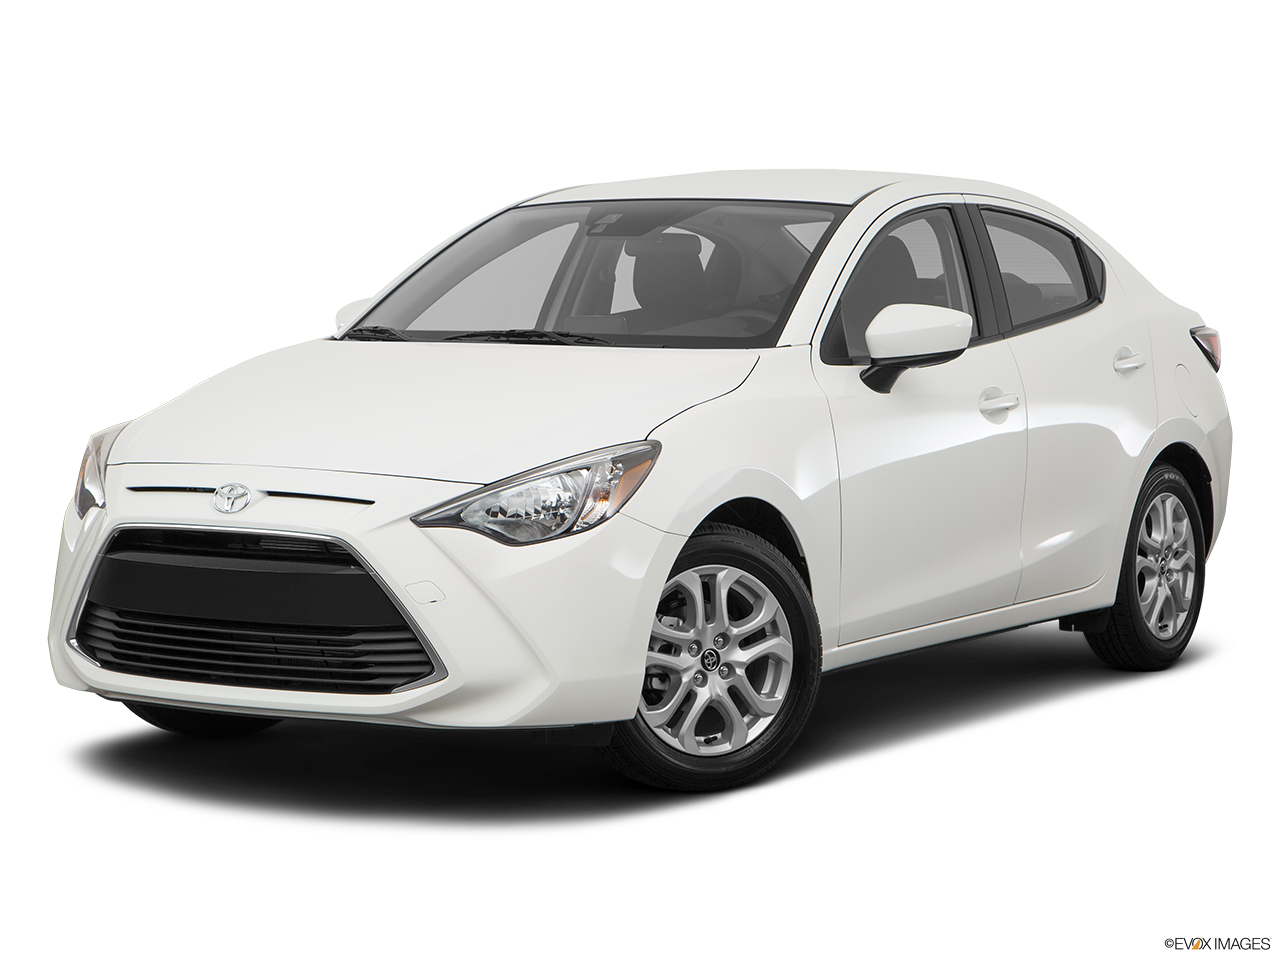 Test Drive A 2017 Toyota Prius at Moss Bros Toyota of Moreno Valley in Riverside